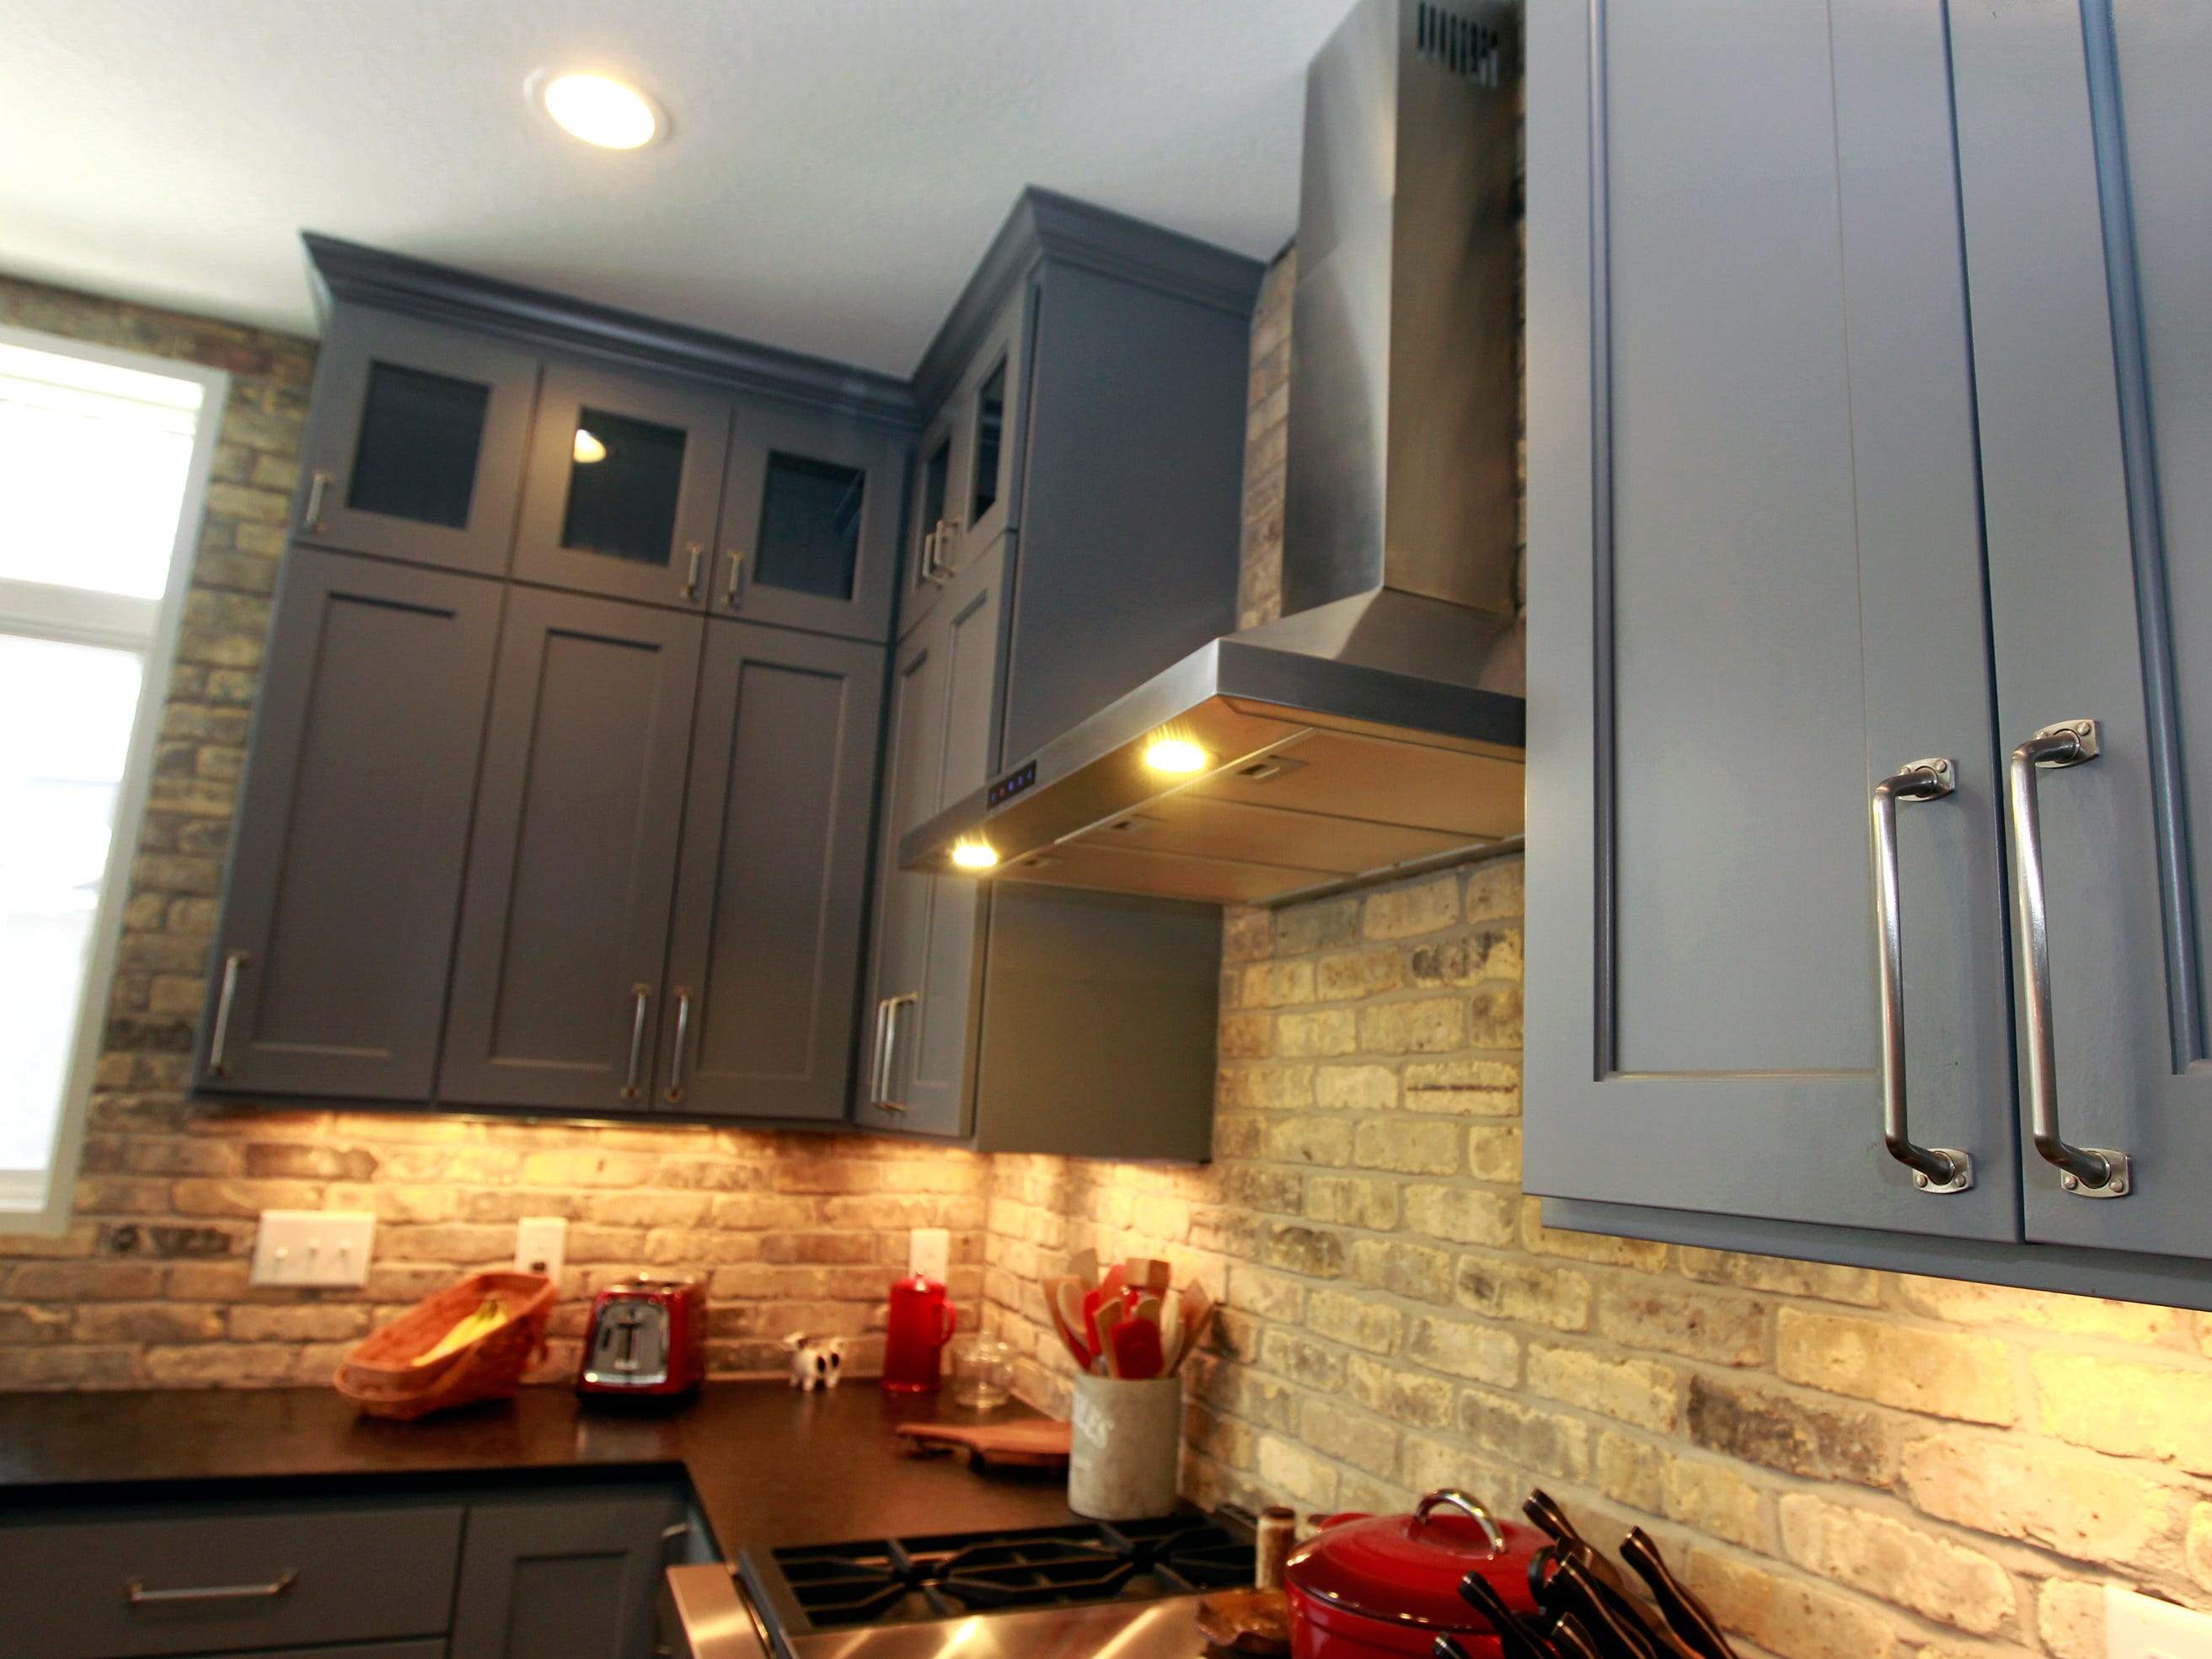 The kitchen's custom cabinets are a gray shade with a bit of blue, and they go to the ceiling.